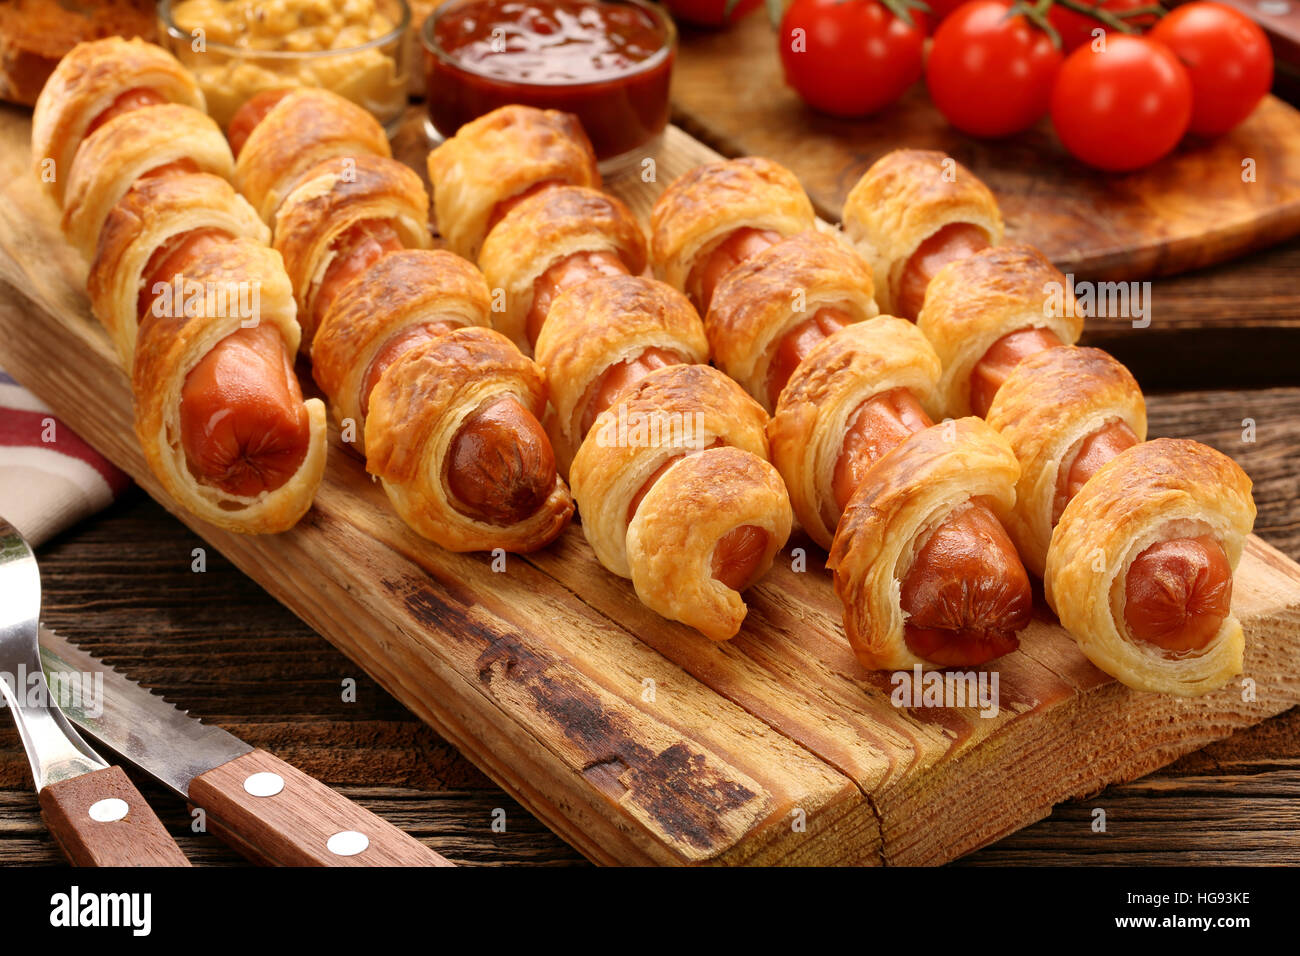 Rolled hot dog sausages baked in puff pastry on wooden background - Stock Image